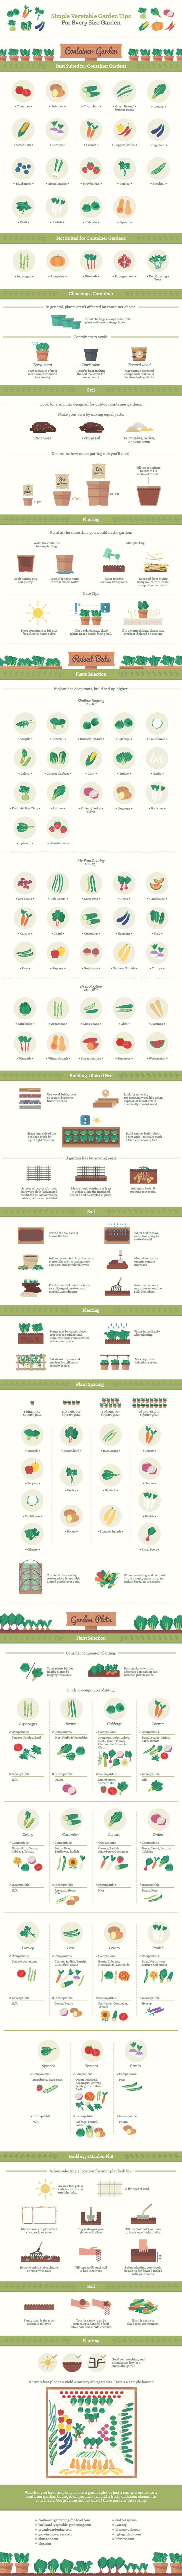 Simple Vegetable Garden Infographic